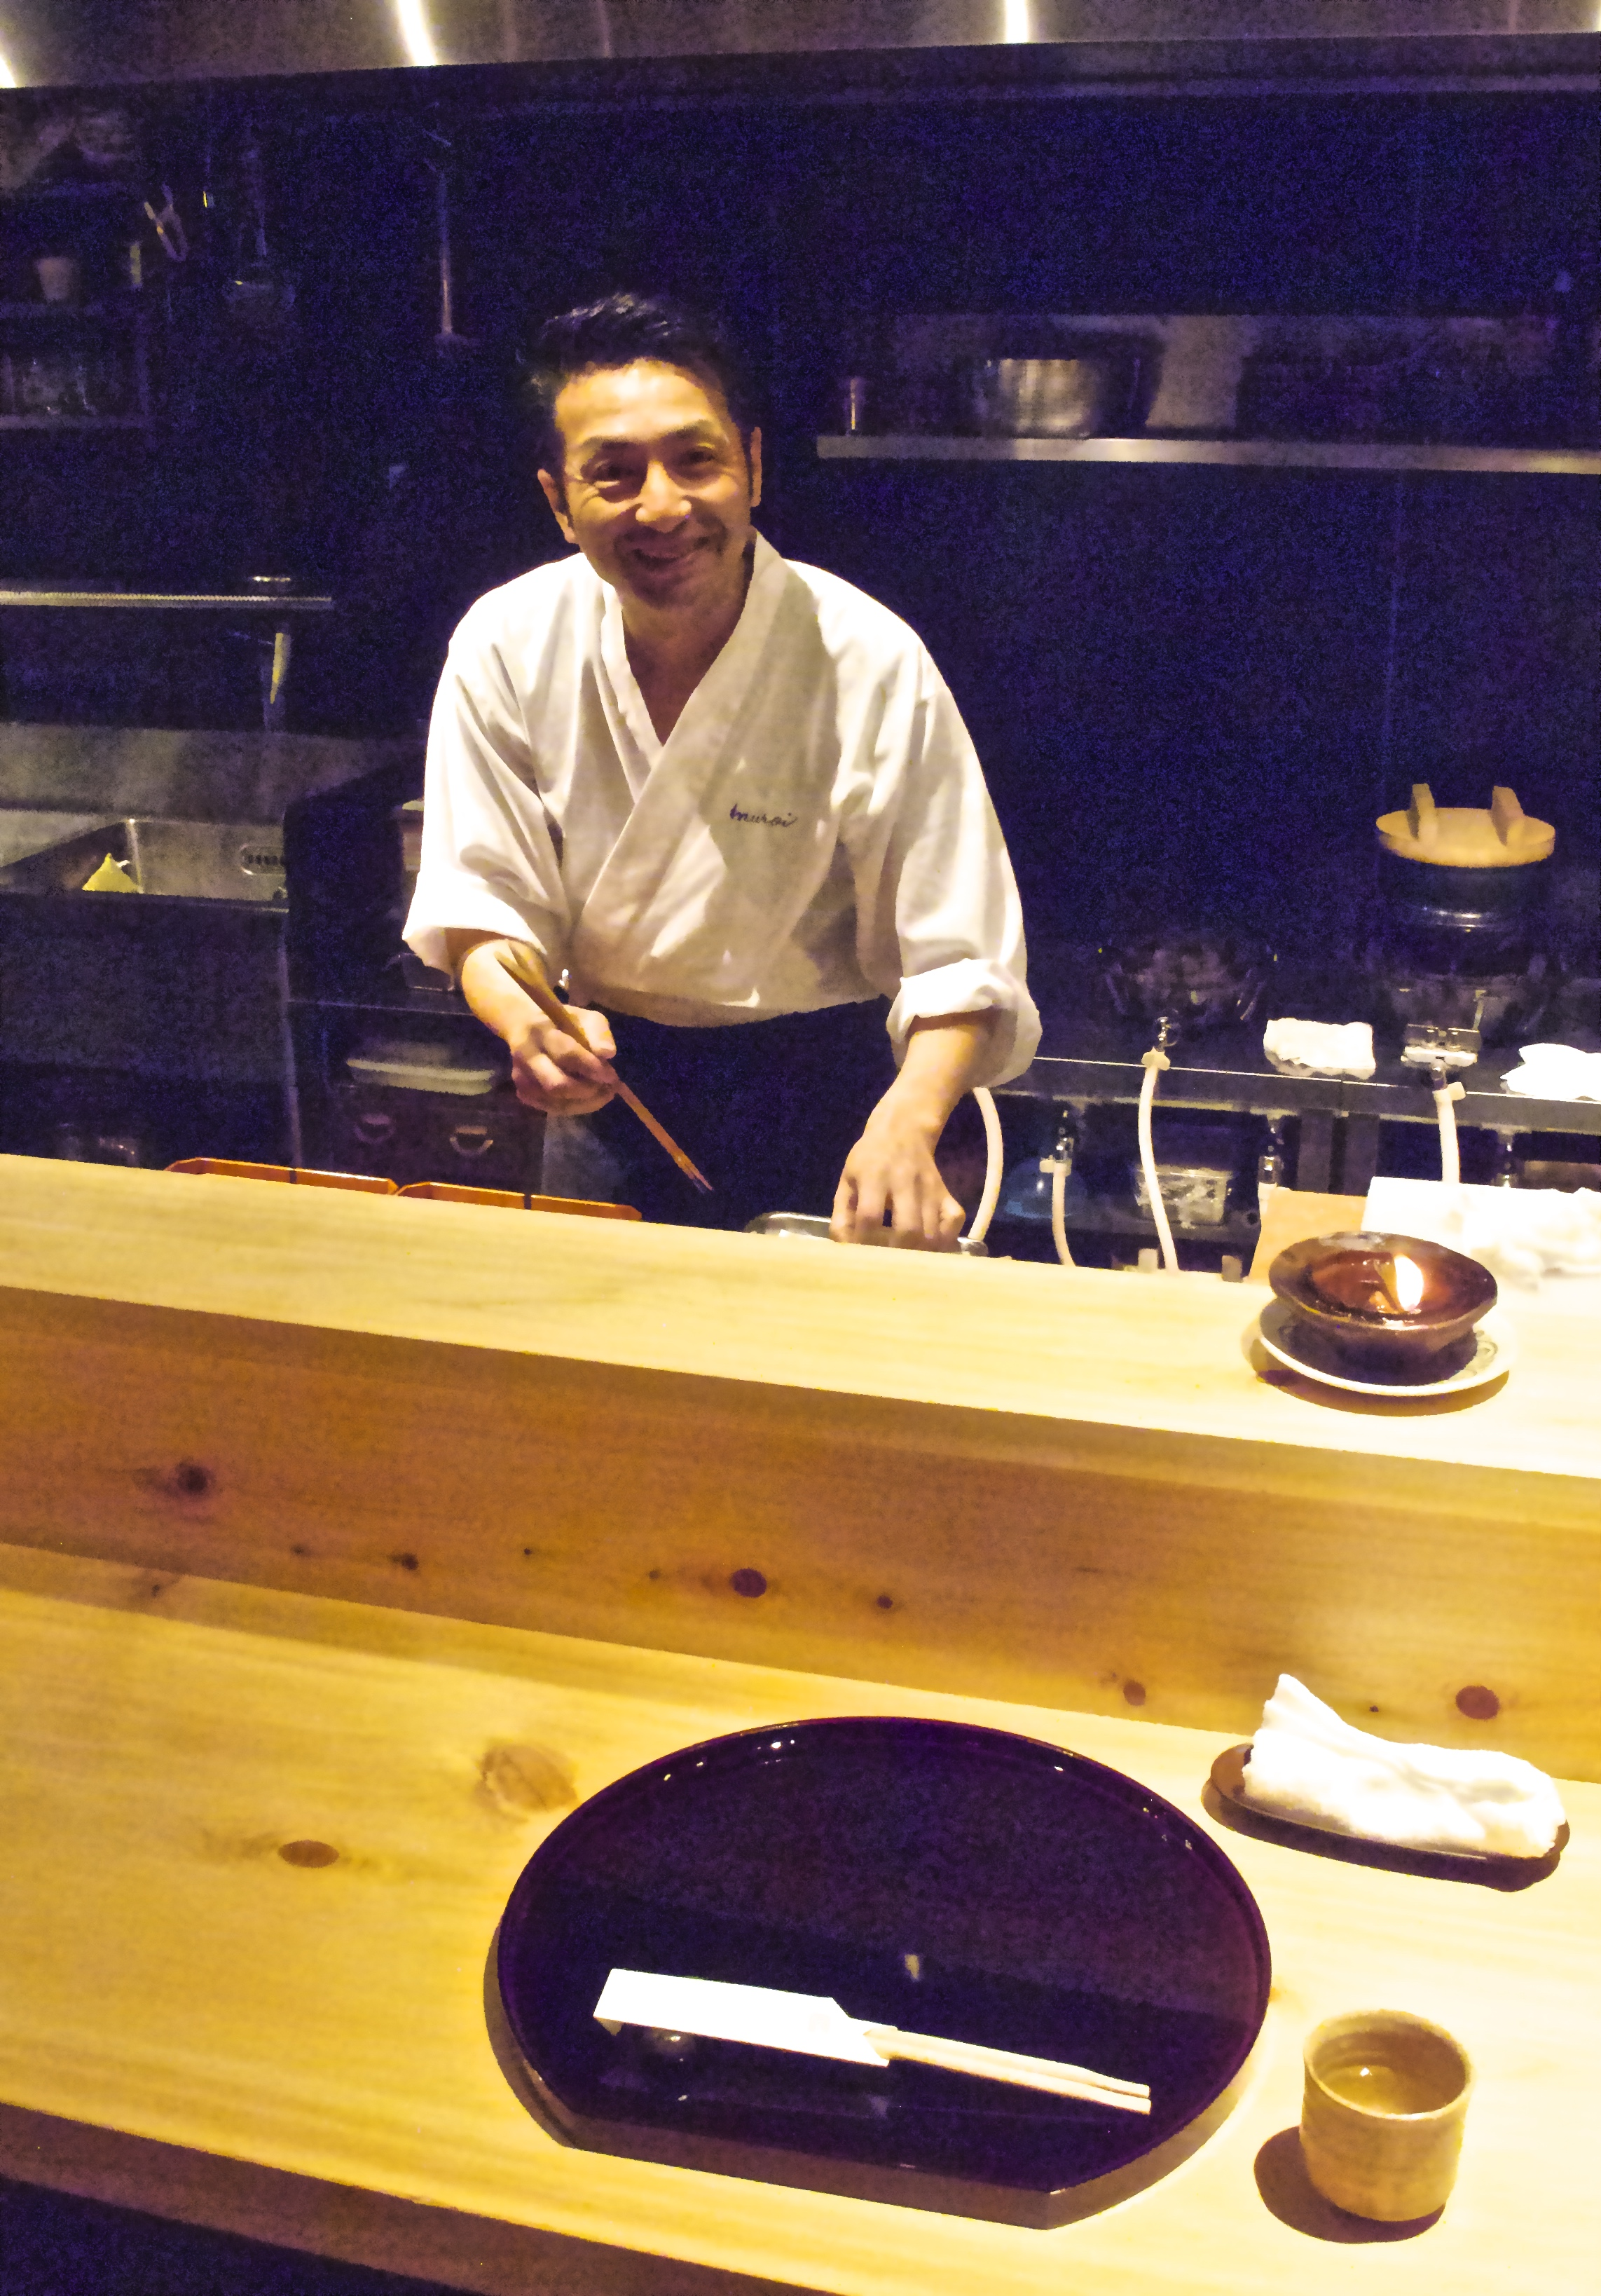 At night Shigeru is behind the counter at his restaurant preparing the meal he has devised that day.